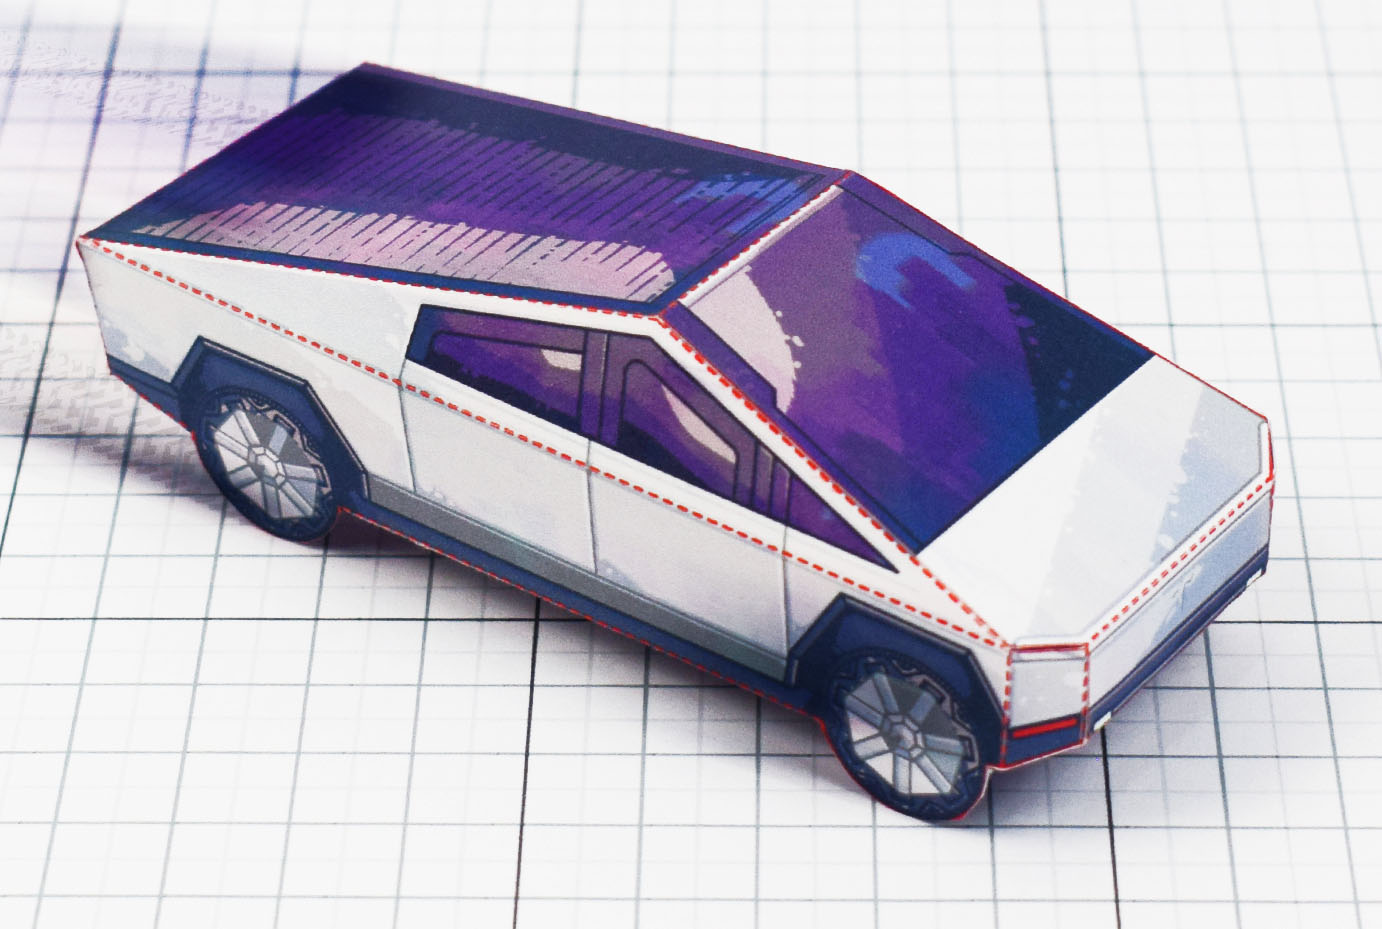 PTI- Tesla Cybertruck - Fold Up Toy - Paper Toy Image main